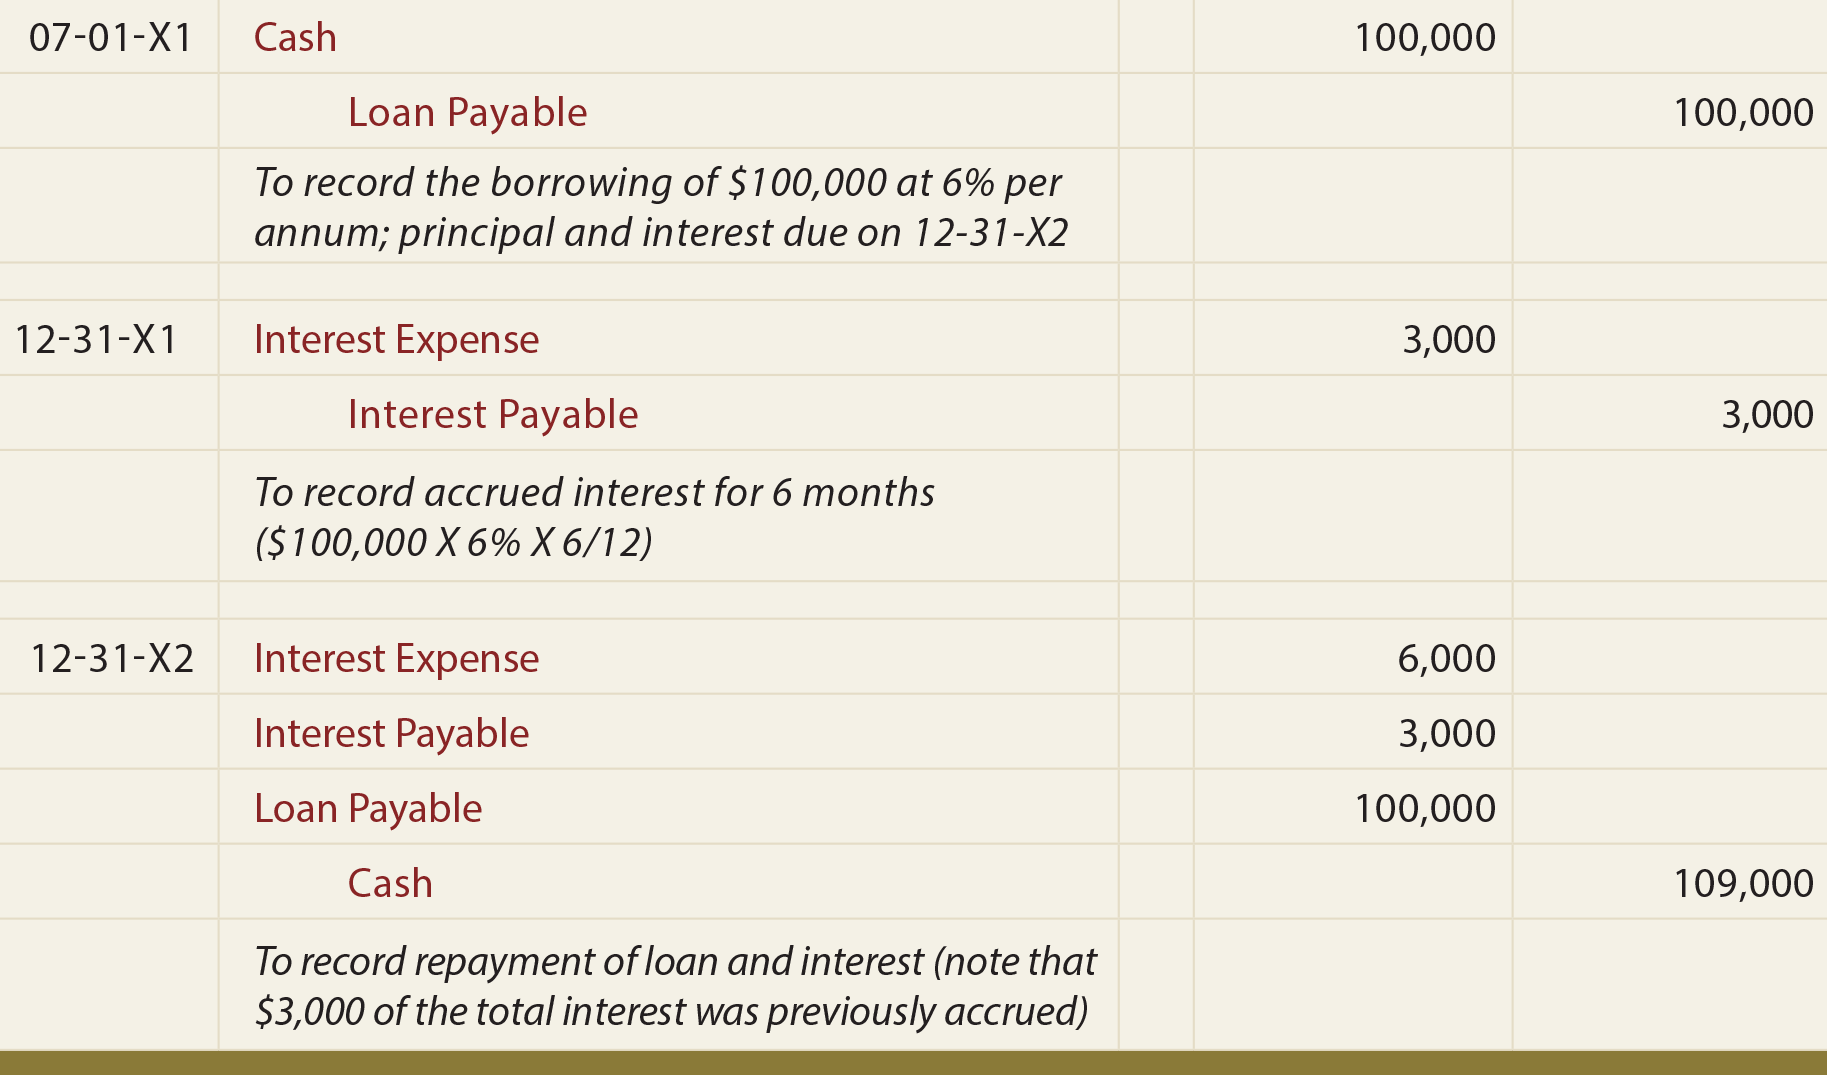 Loan Note Payable Borrow Accrued Interest And Repay